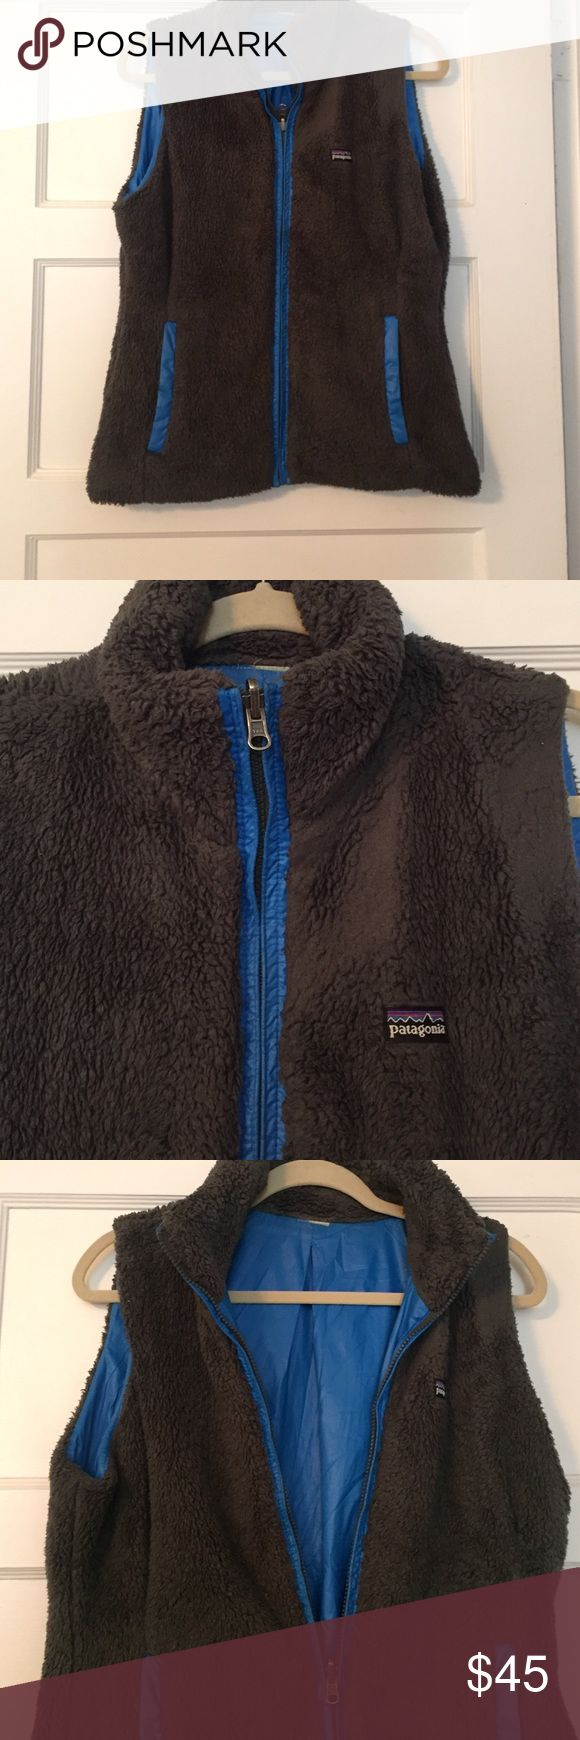 Patagonia Charcoal gray and blue vest Great condition Patagonia vest. Worn only a few times. So soft. Pockets ! Patagonia Jackets & Coats Vests